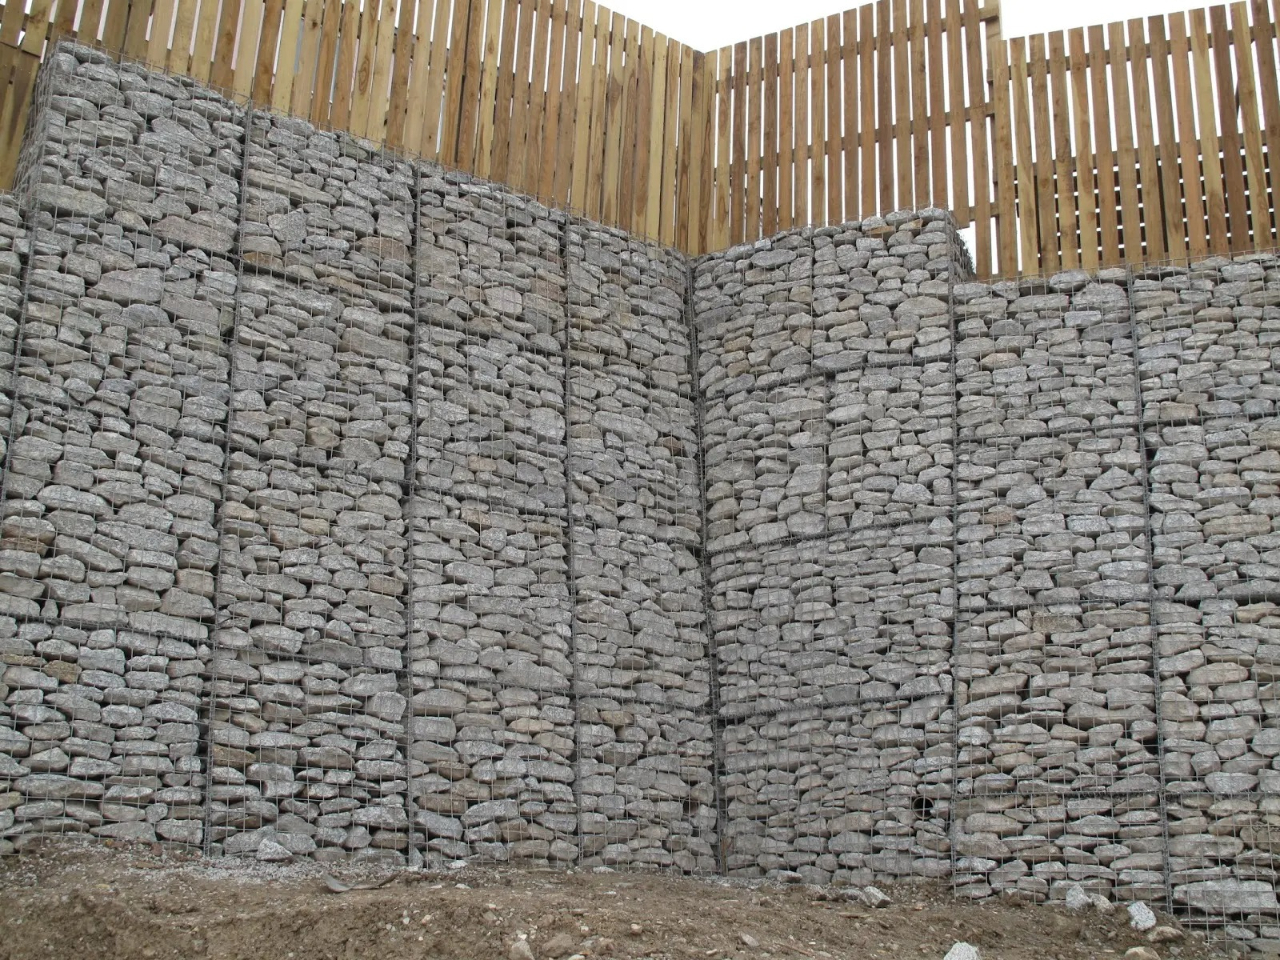 Stone wall with wooden fence (close up)